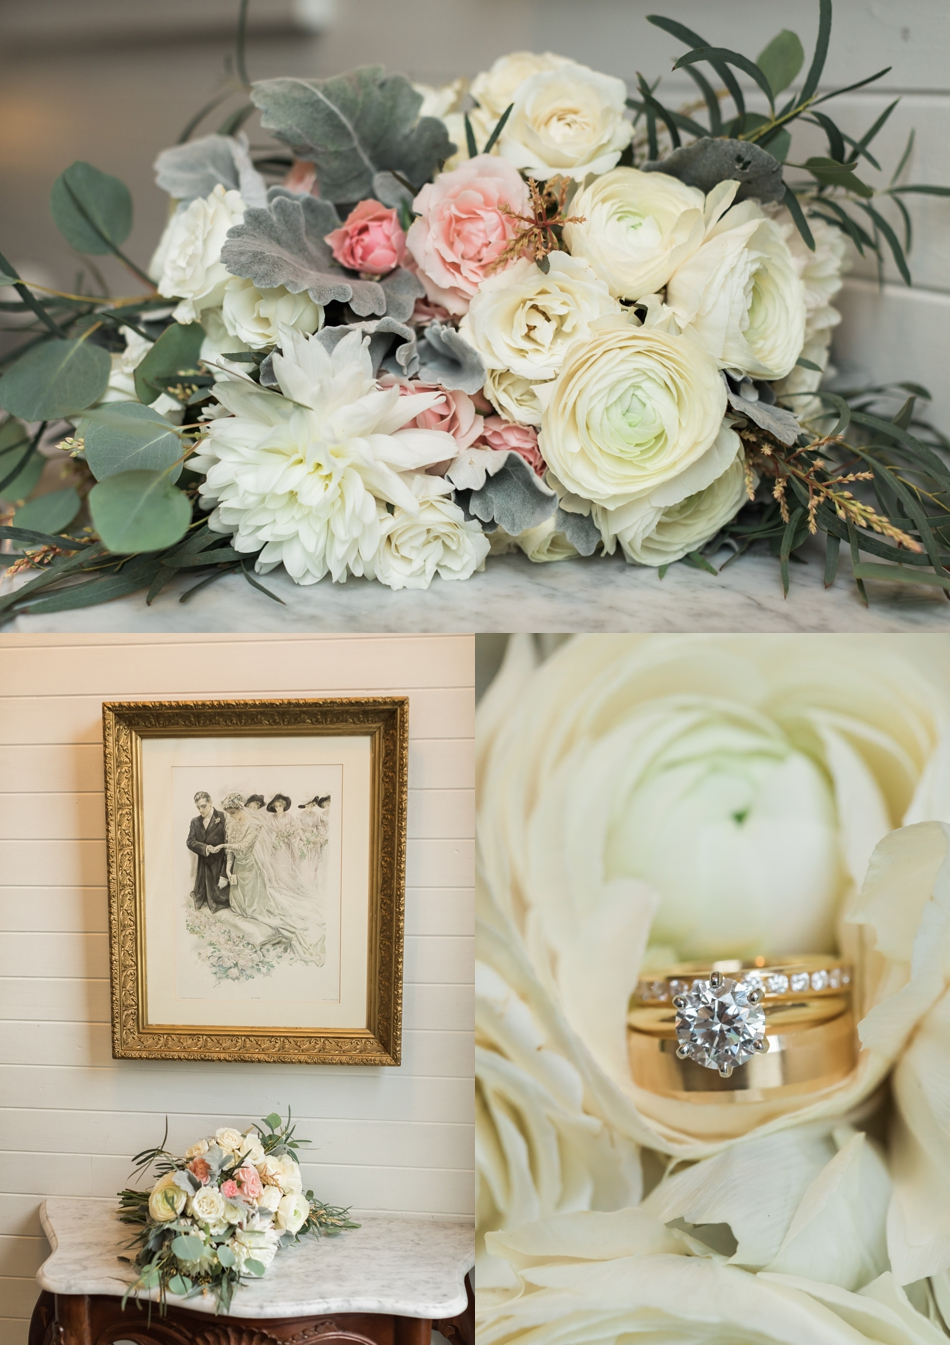 Photo of wedding details at an intimate wedding at Belle Chapel in Snohomish, a wedding venue near Seattle. | Joanna Monger Photography | Snohomish & Seattle Photographer